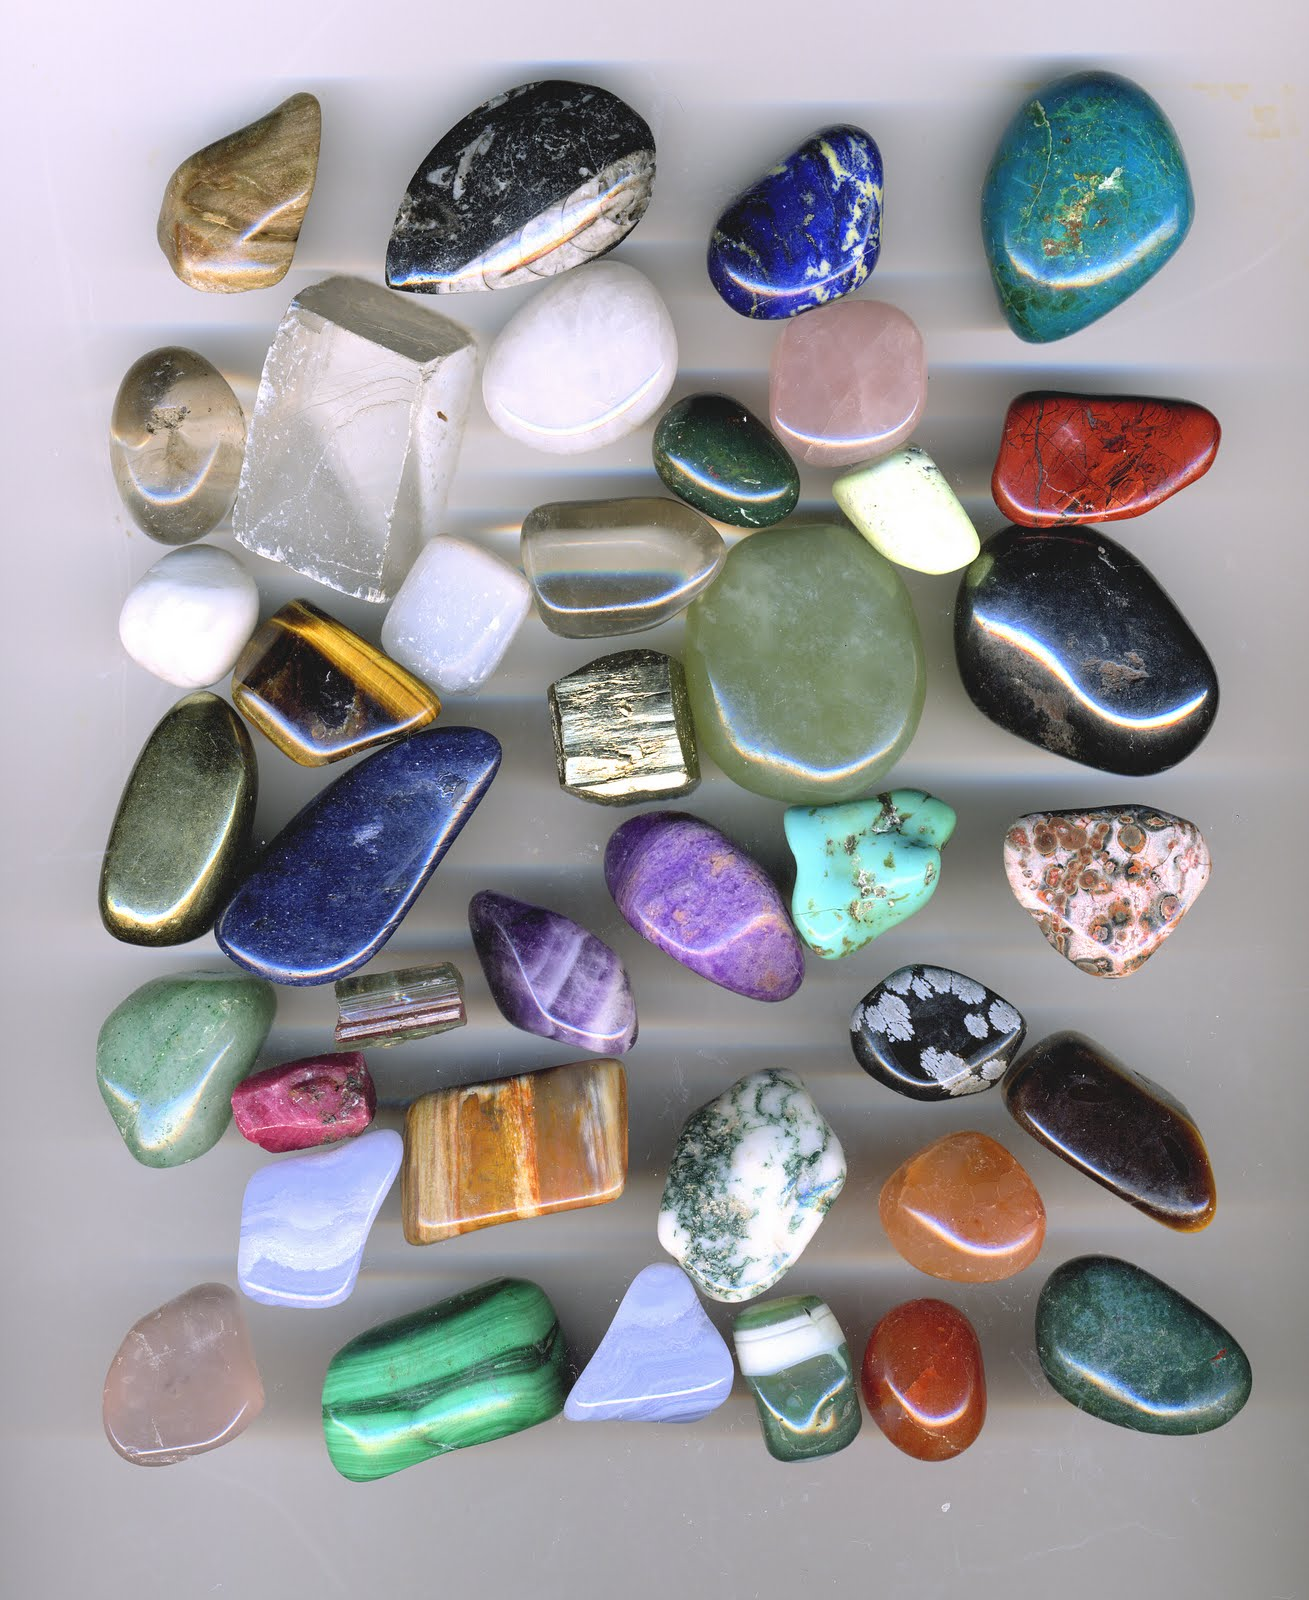 Rough Gemstone Identification Chart http://rayoverde.com.ar/gem-identification-chart&page=6